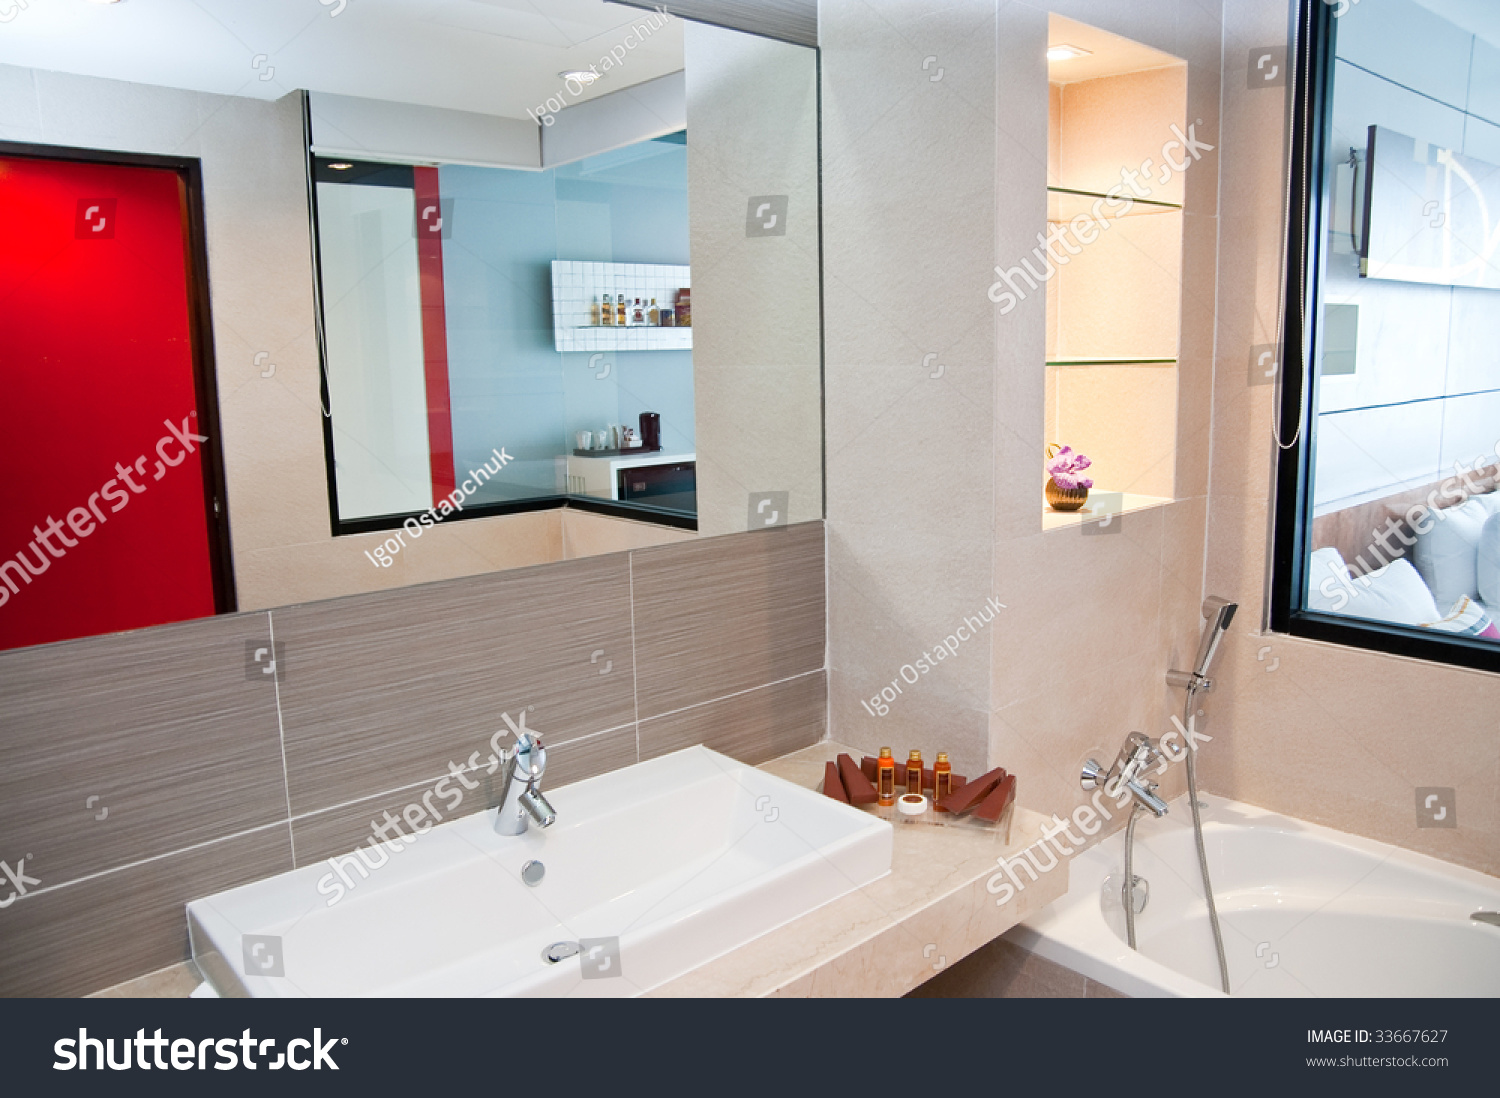 Mirror on a wall images home wall decoration ideas mirror on a wall choice image home wall decoration ideas mirror on wall bathroom stock photo amipublicfo Gallery